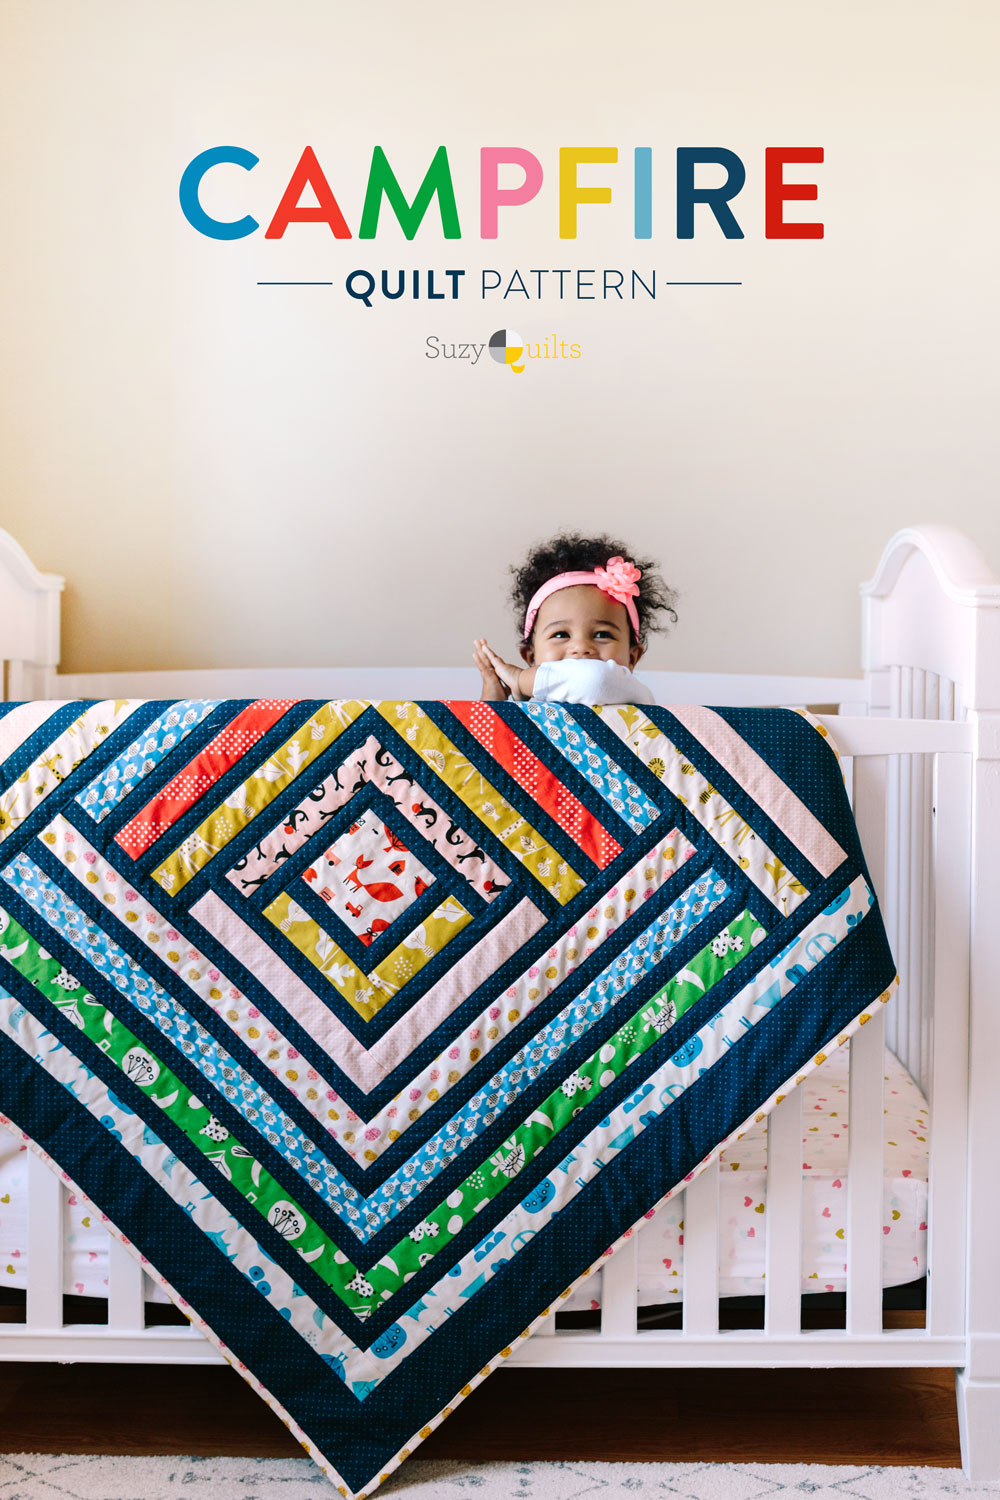 Campfire Modern Quilt Pattern PDF. A fresh interpretation of the traditional log cabin quilt block. | Suzy Quilts https://suzyquilts.com/campfire-quilt-pattern-tips-pics-fabric